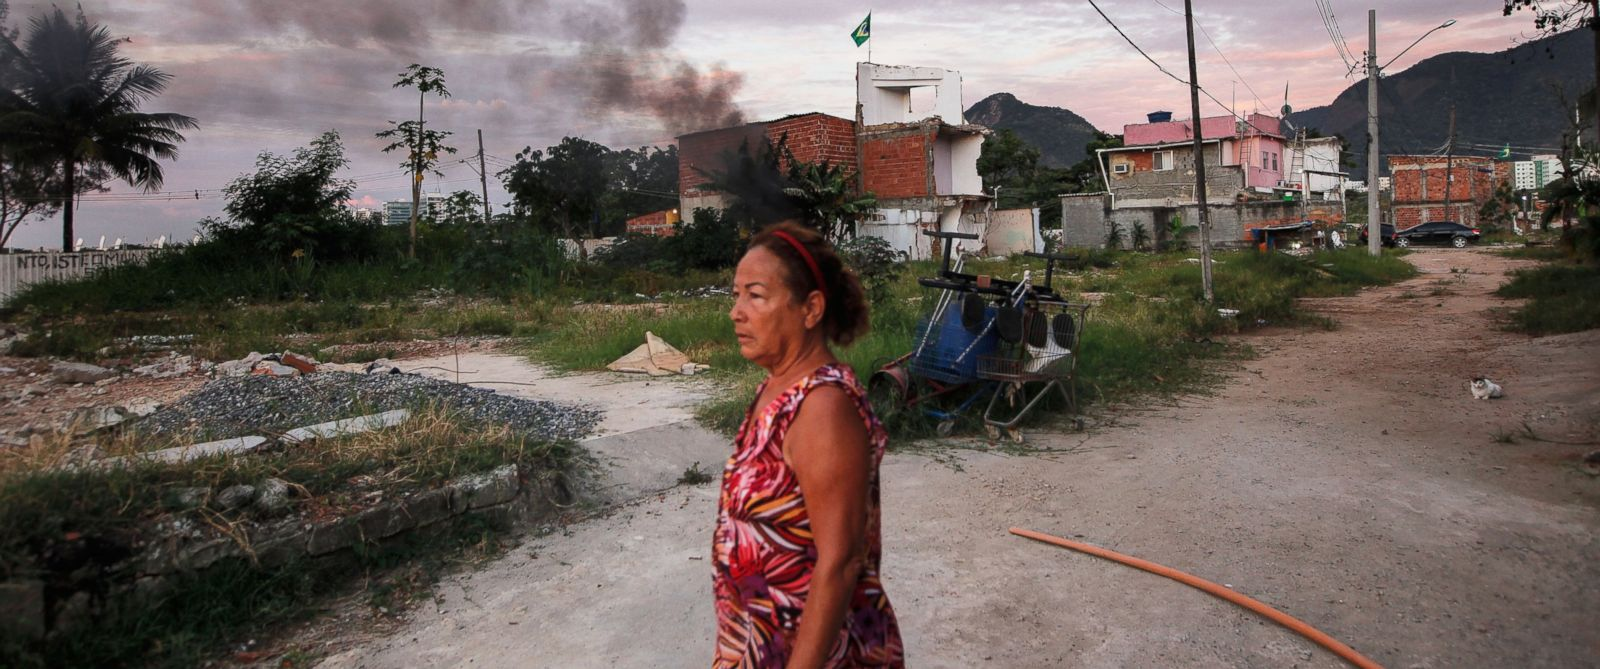 PHOTO:Marize do Amor Divino, who said she was diagnosed with the Zika virus, walks in the mostly demolished Vila Autodromo favela community, Feb. 25, 2016, in Rio de Janeiro.